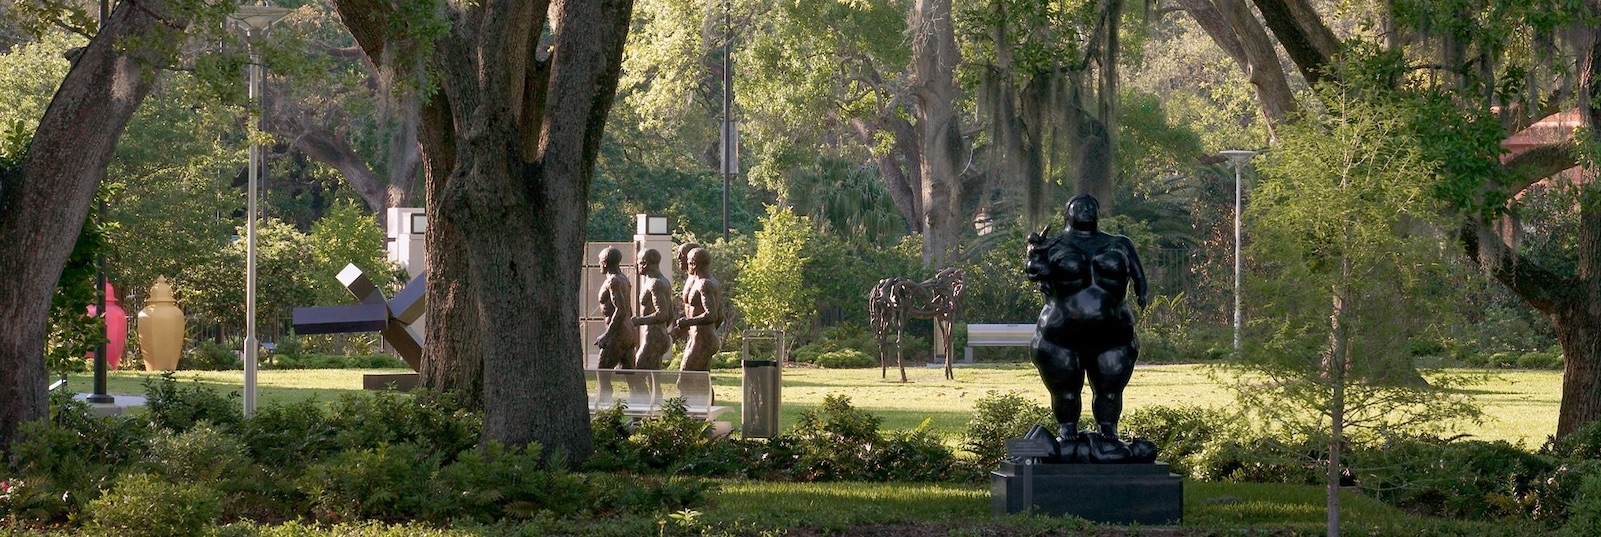 Stroll among more than 90 works of art in a scenic Louisiana landscape.